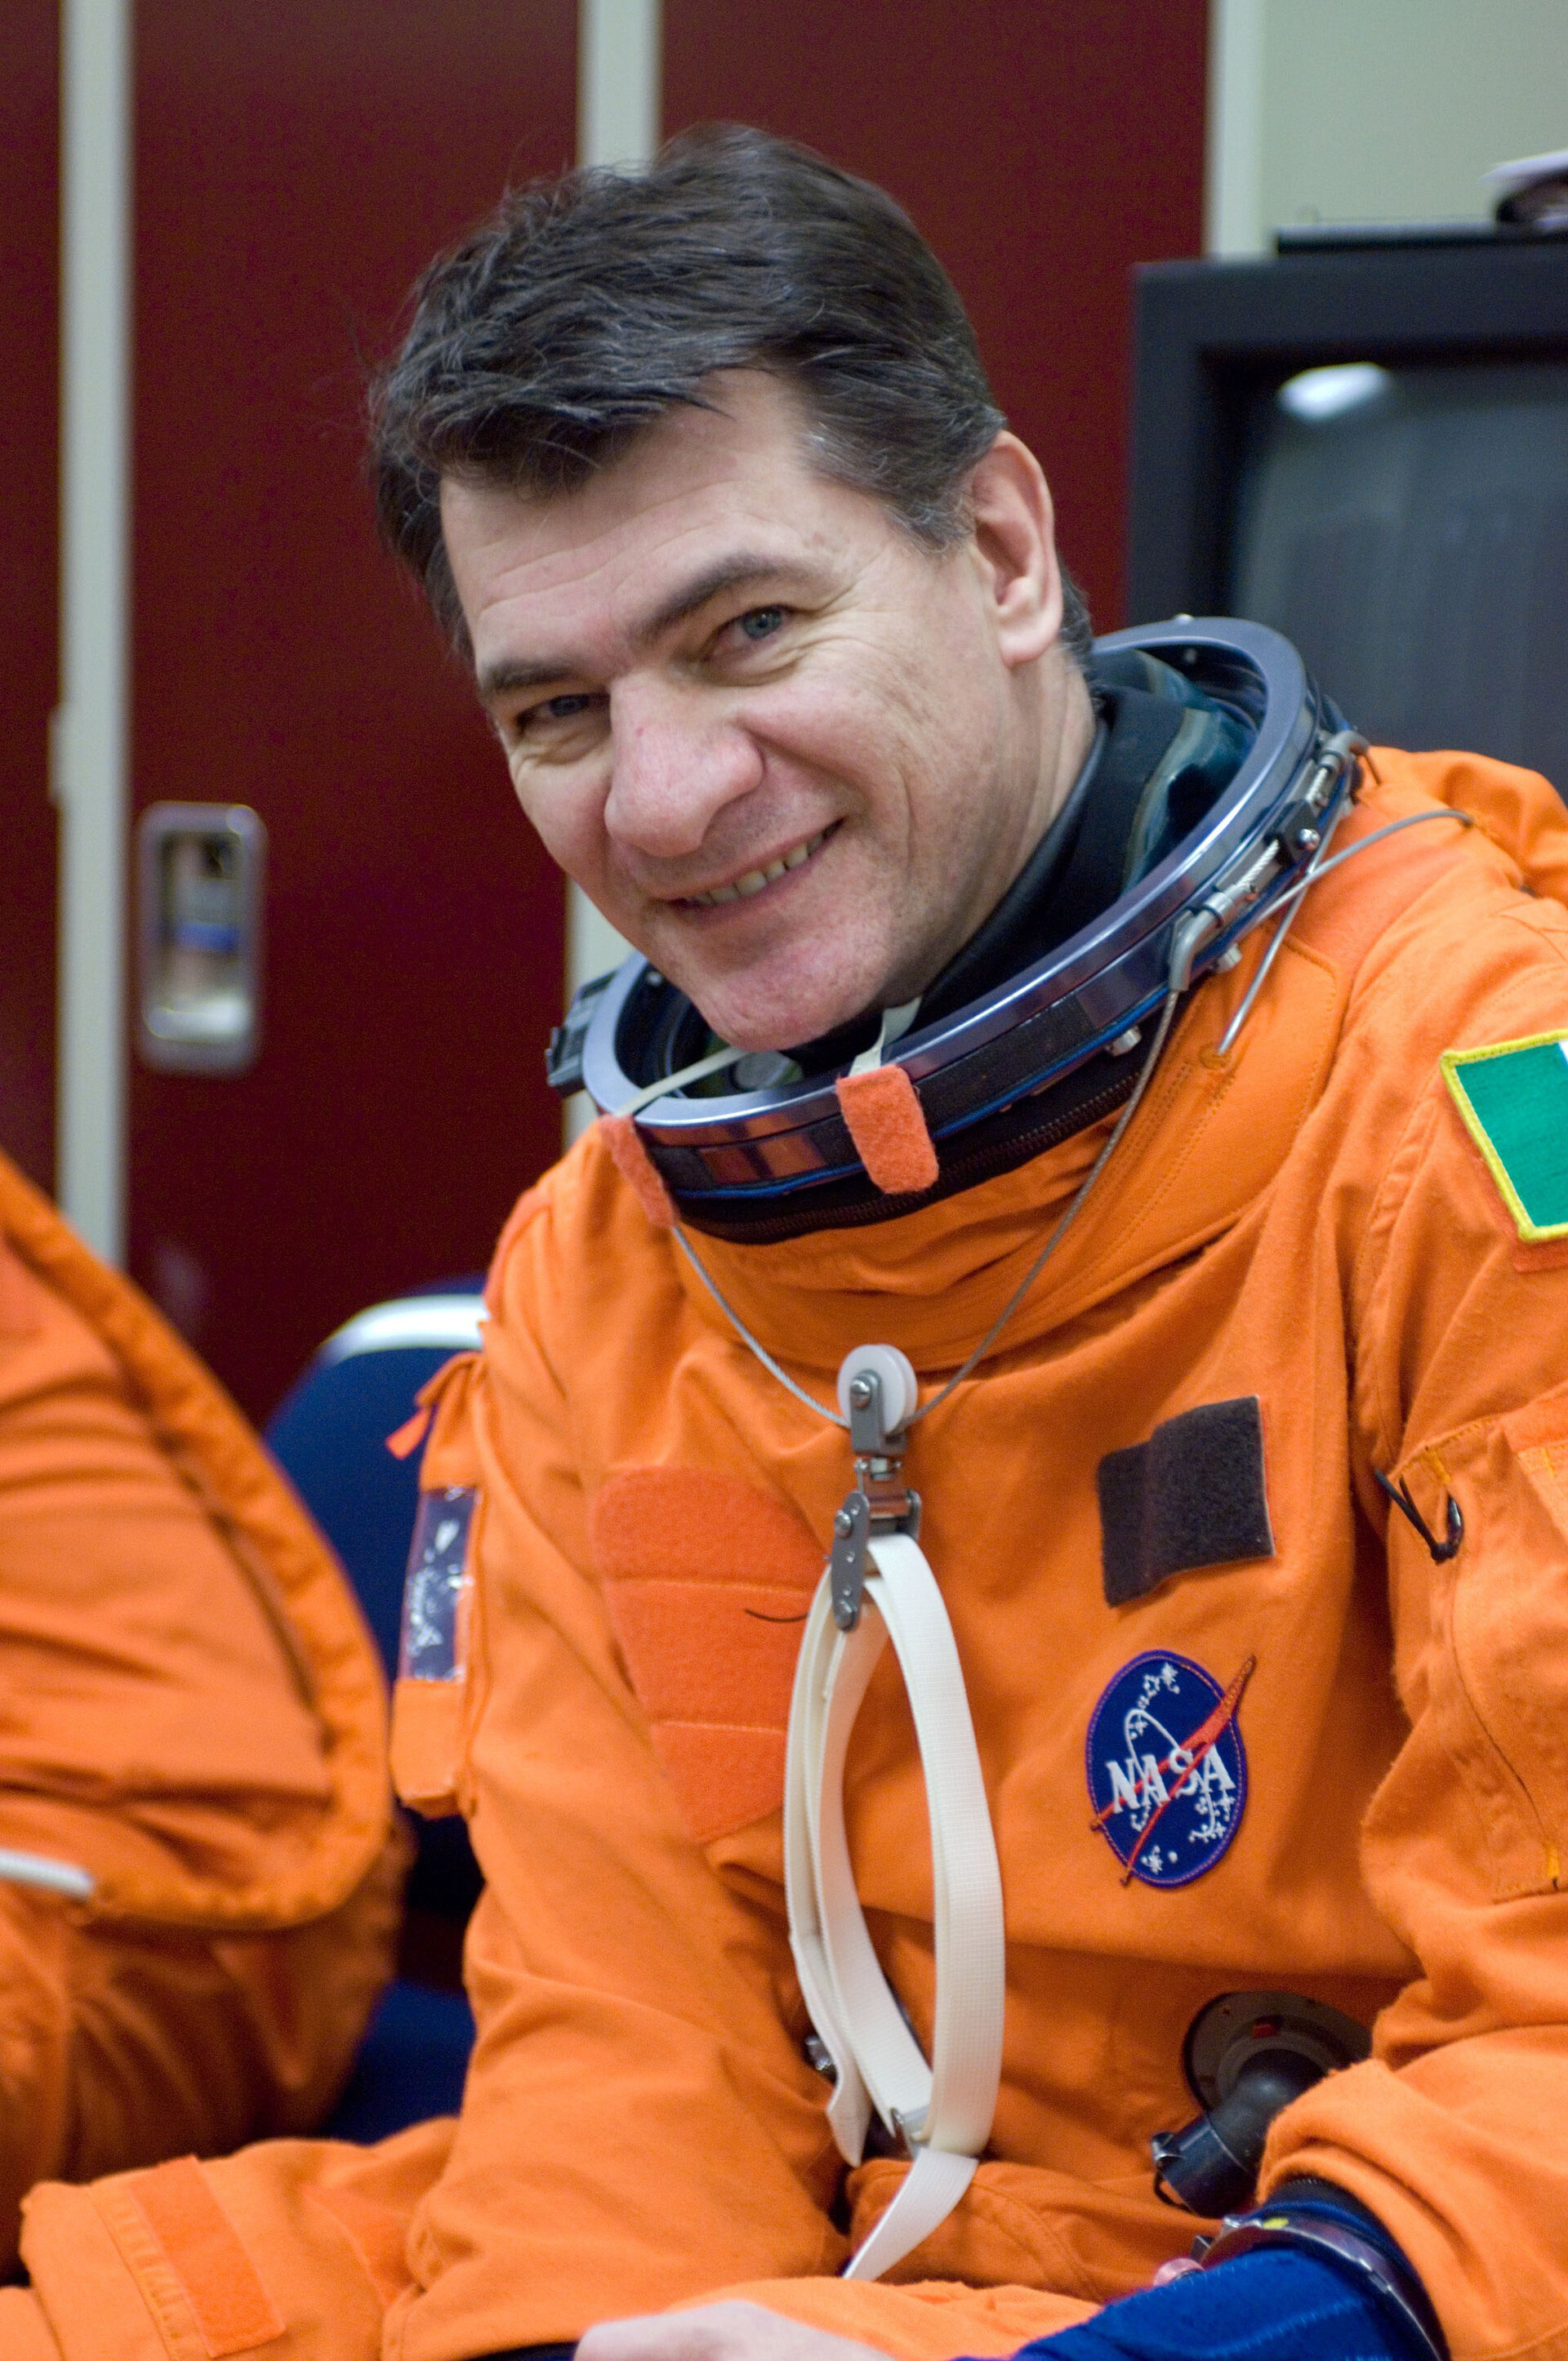 European Space Agency (ESA) astronaut Paolo Nespoli, STS-120 mission specialist